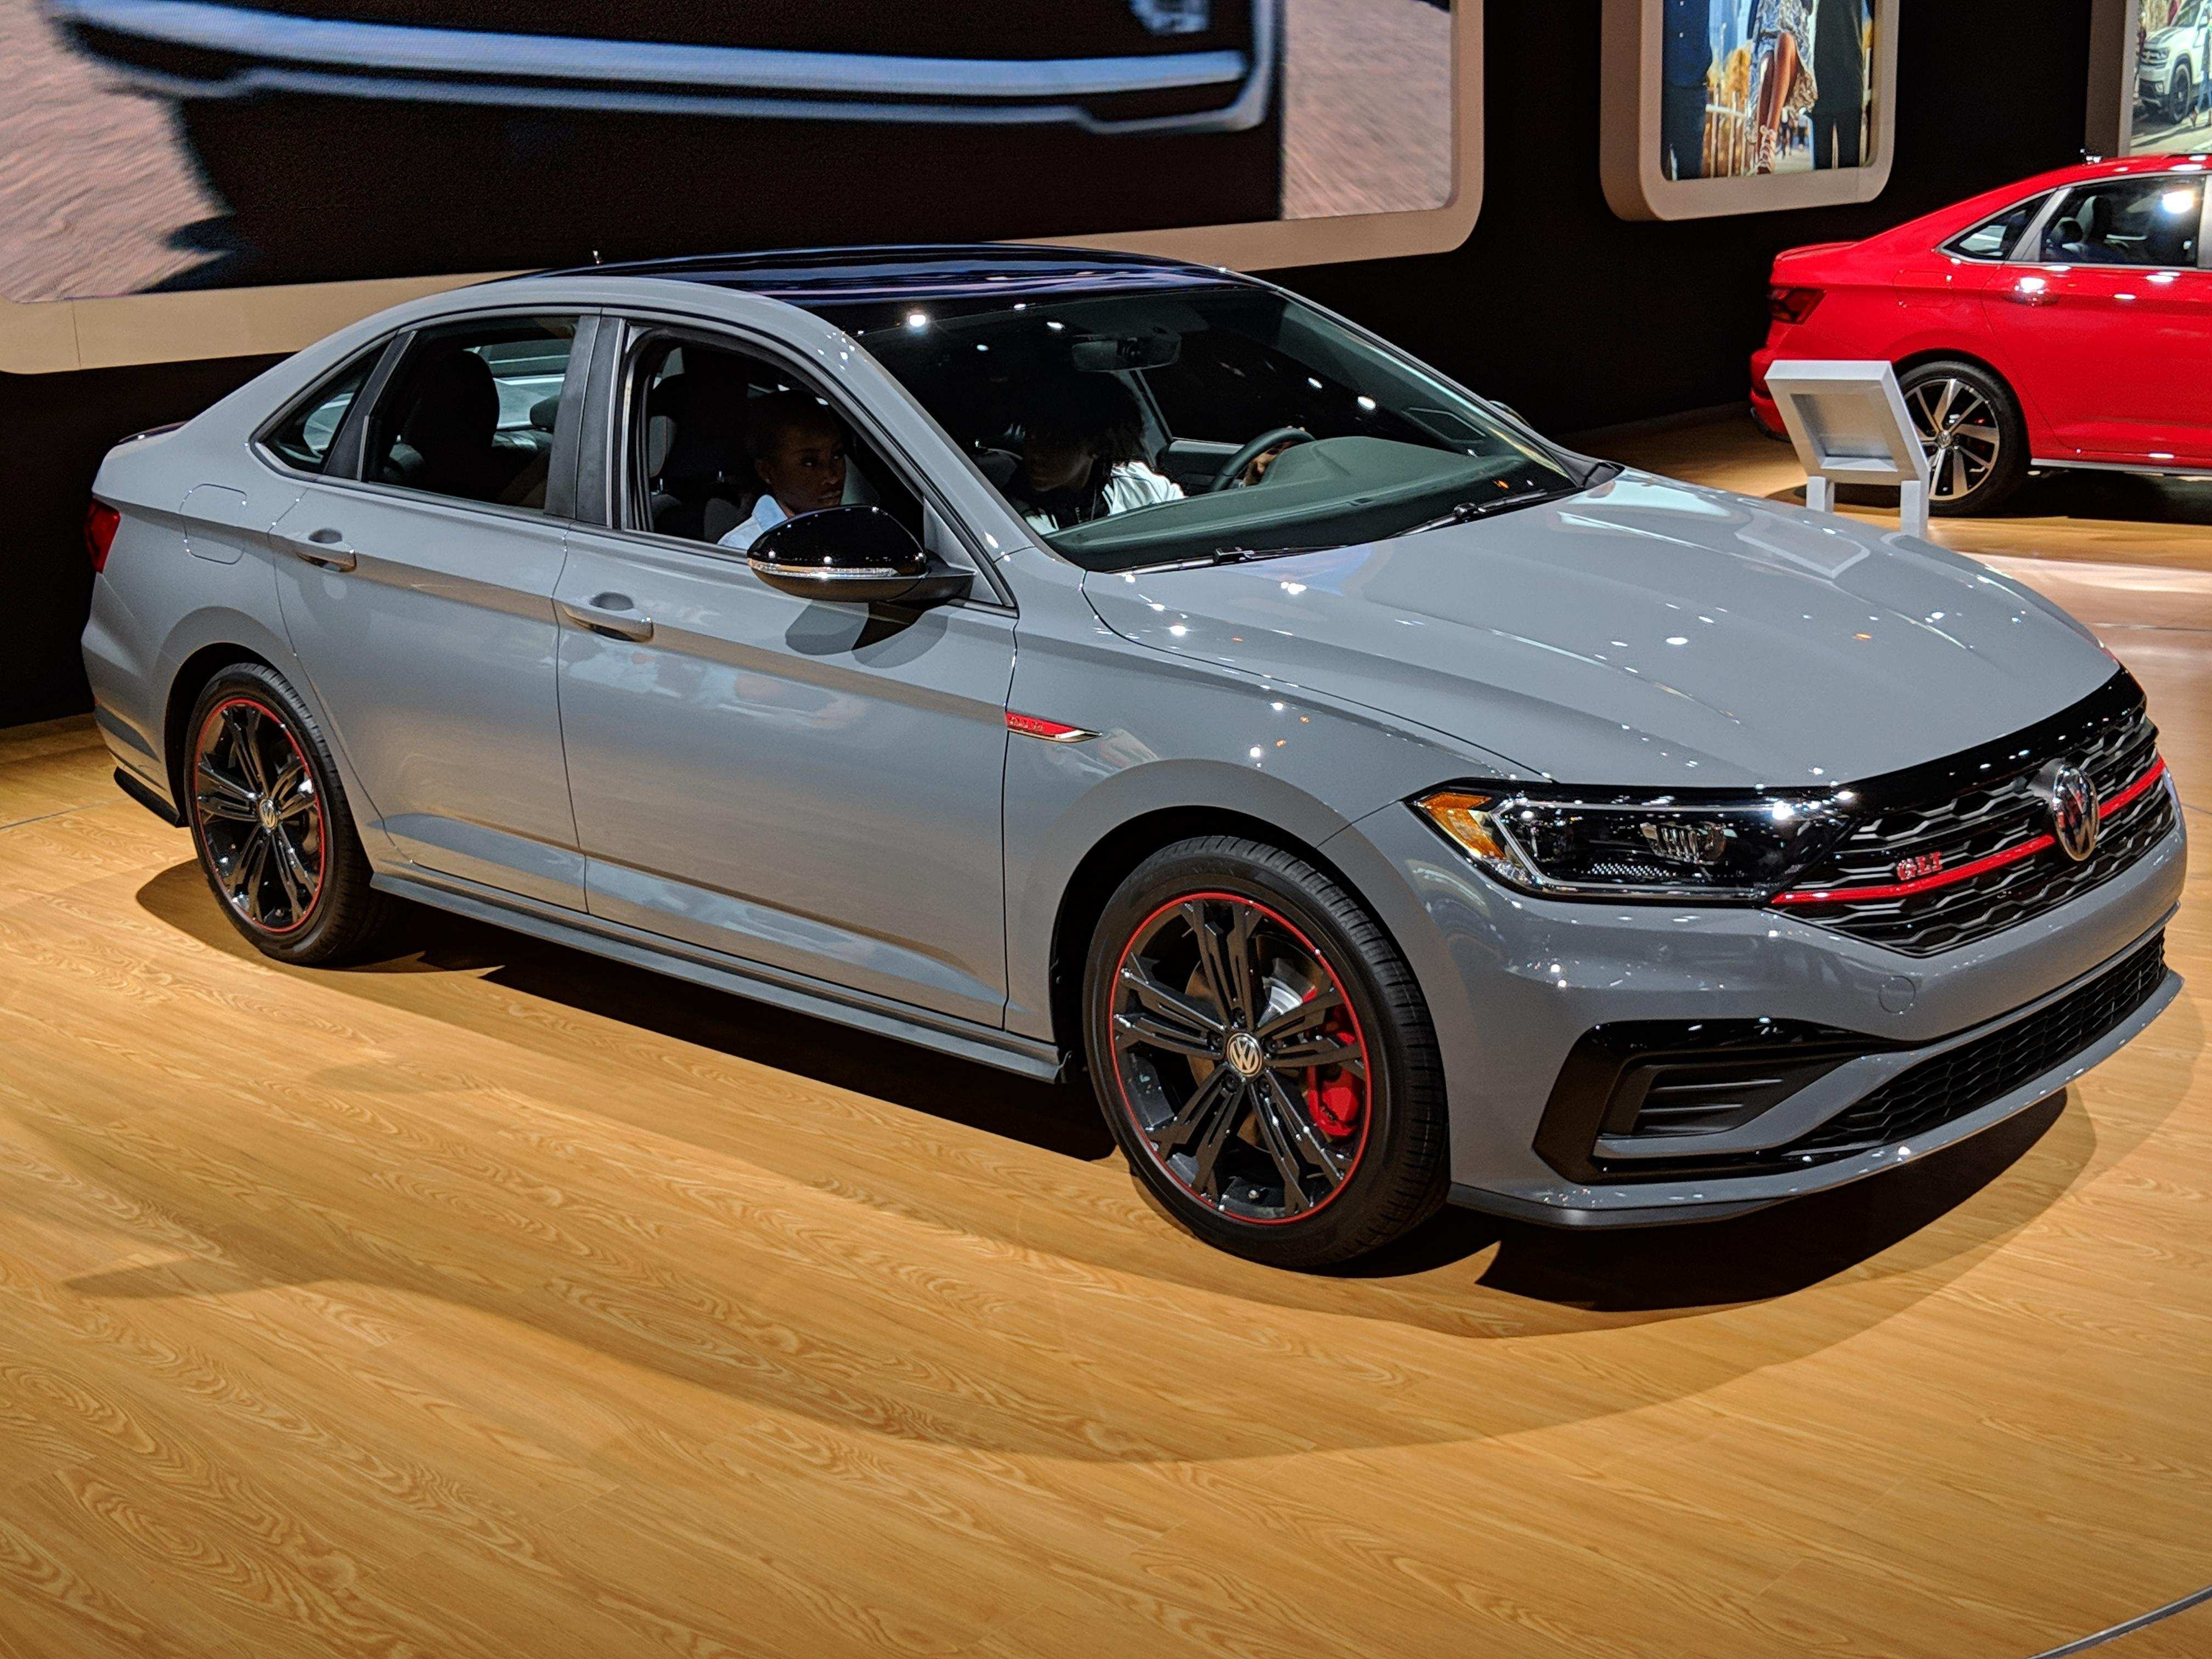 2020 Vw Jetta Review.55 All New 2020 Volkswagen Jetta Release Review Cars 2020